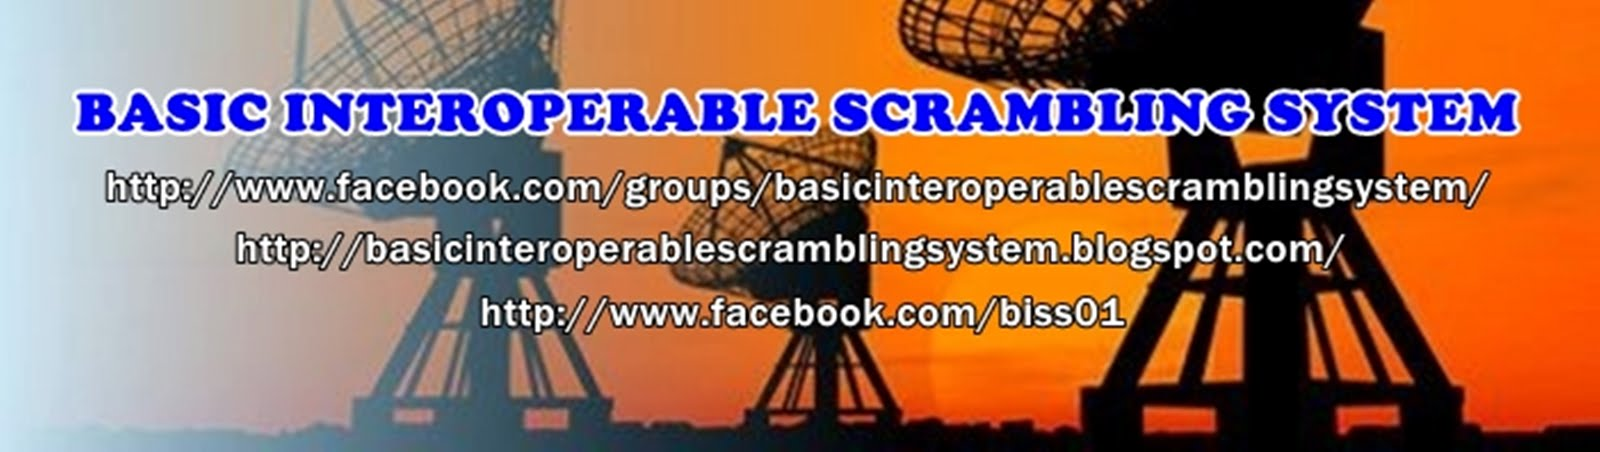 BASIC INTEROPERABLE SCRAMBLING SYSTEM